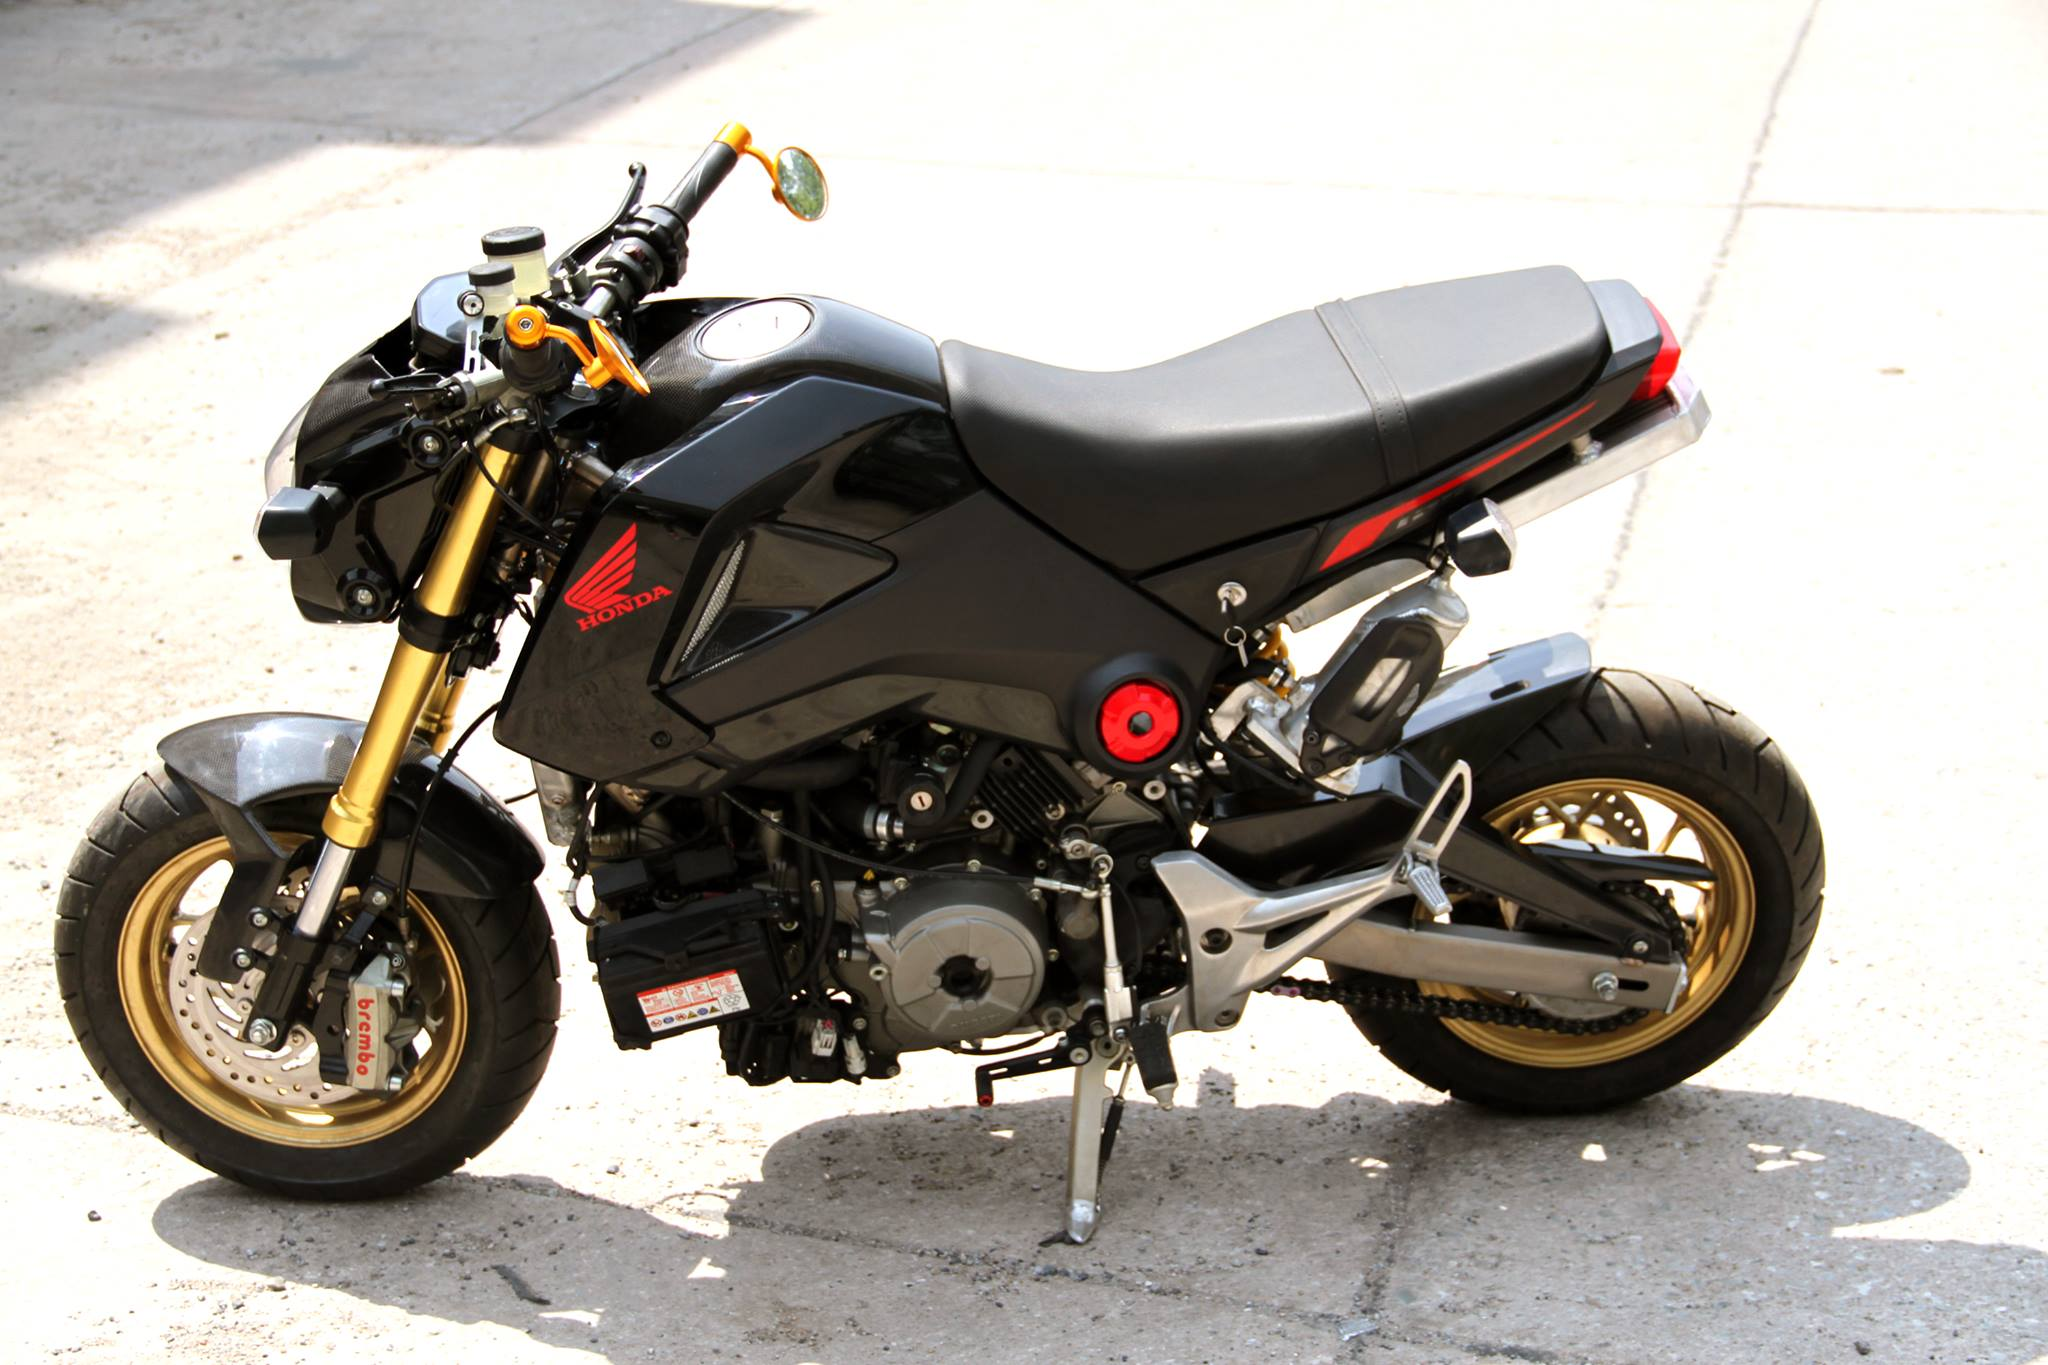 honda grom msx ducati panigale engine swap insane honda pro kevin. Black Bedroom Furniture Sets. Home Design Ideas